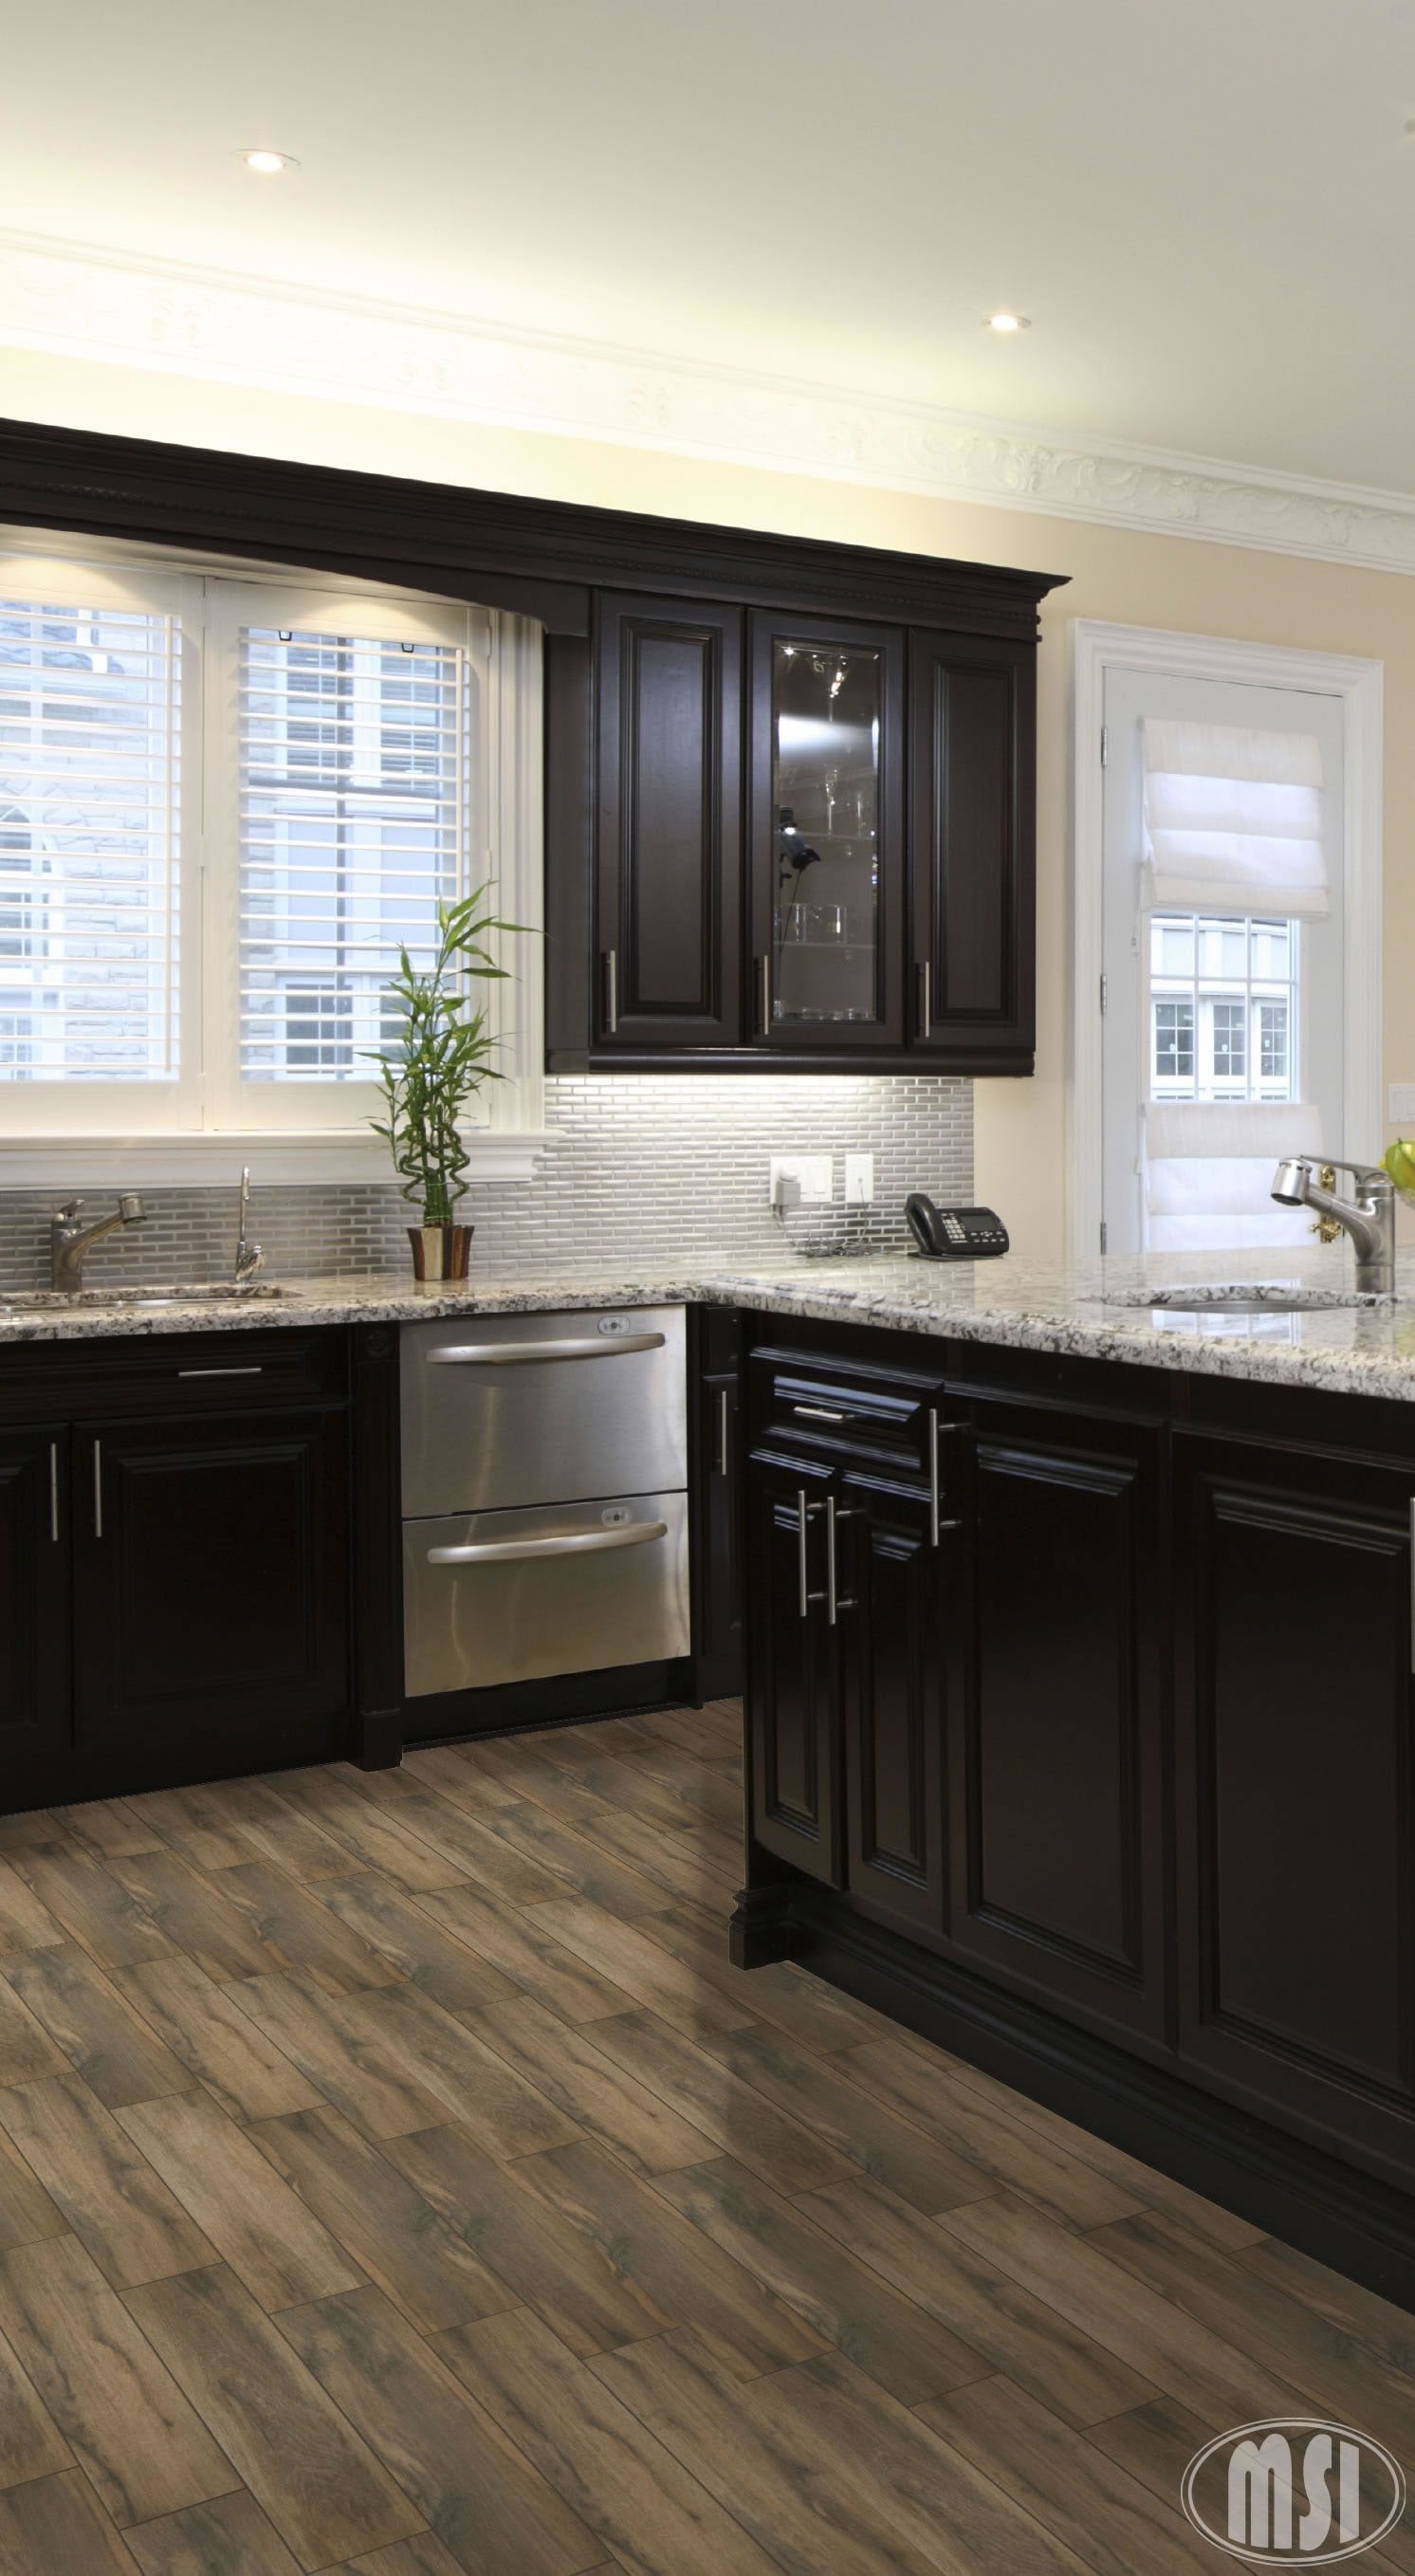 Beautiful Kitchen Design Ideas With Dark Wood Cabinets The Most Amazing In Addition To Beautiful Kitchen D Home Kitchens Kitchen Design Dark Kitchen Cabinets